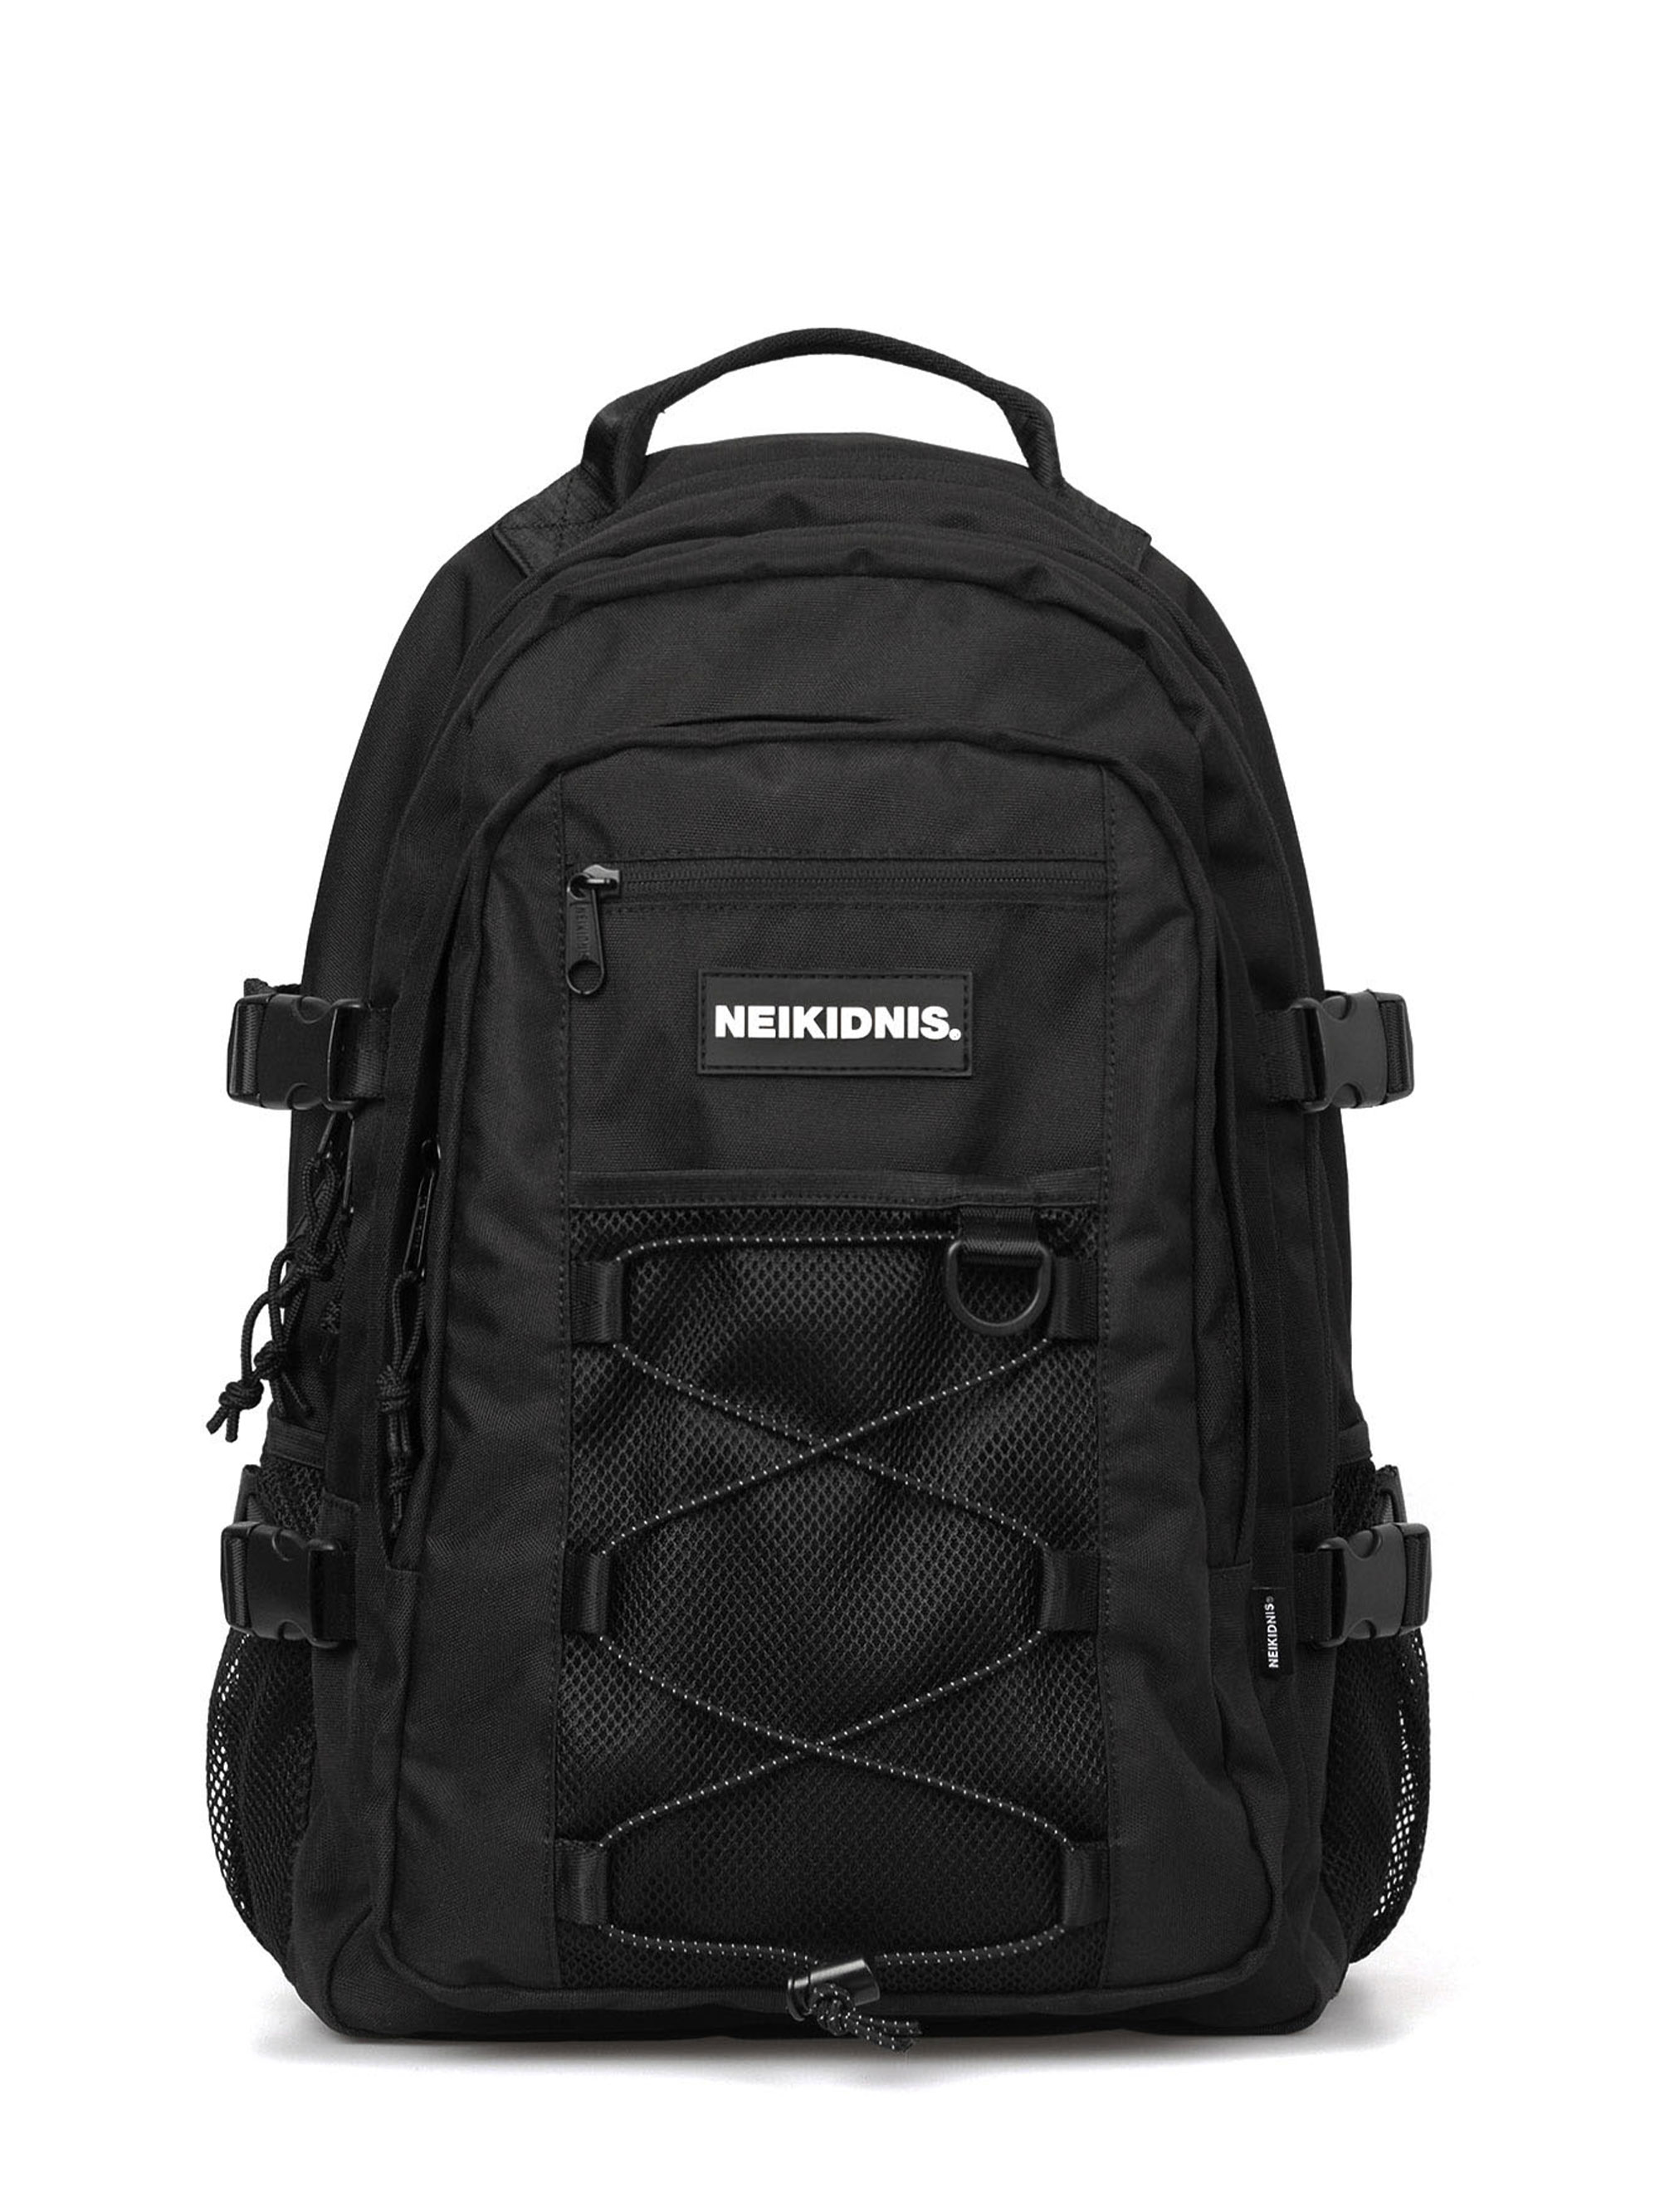 MESH STRING BACKPACK / BLACK (3/19예약배송)